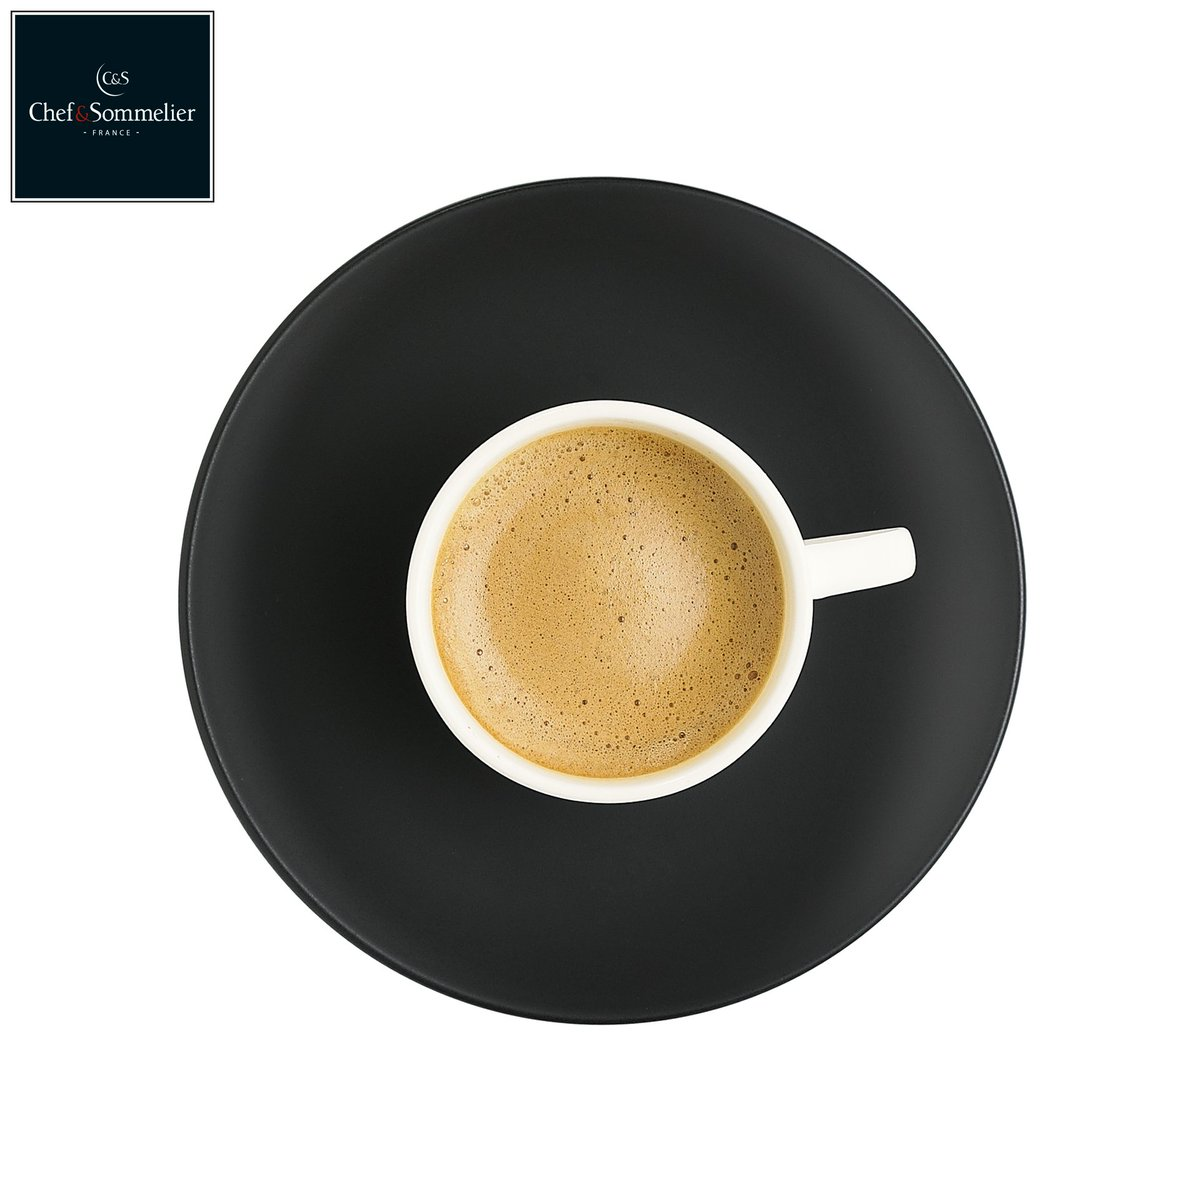 Arc Tableware UK on Twitter  #TuesdayThoughts - Back to work coffee is needed to kickstart this short week! #Coffee #Barista #Drink #Lunch #Work ...  sc 1 st  Twitter & Arc Tableware UK on Twitter: